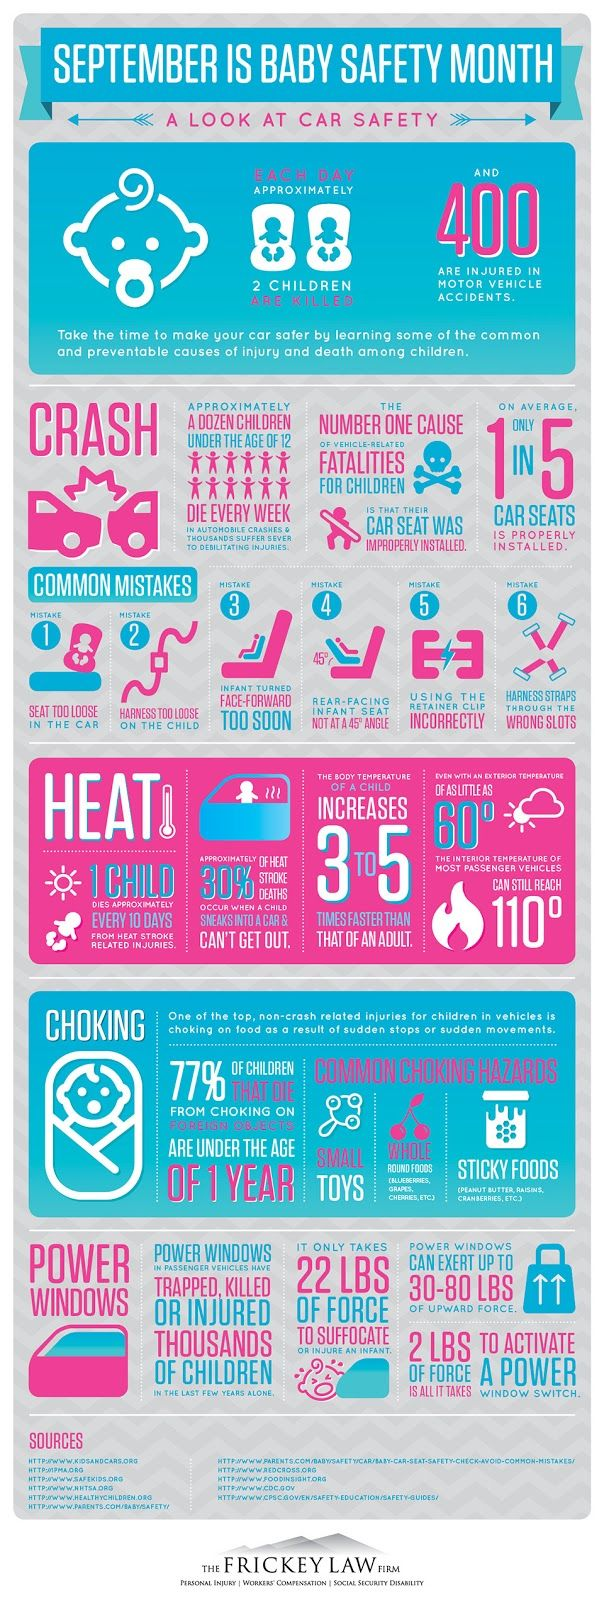 baby safety month a look at car safety